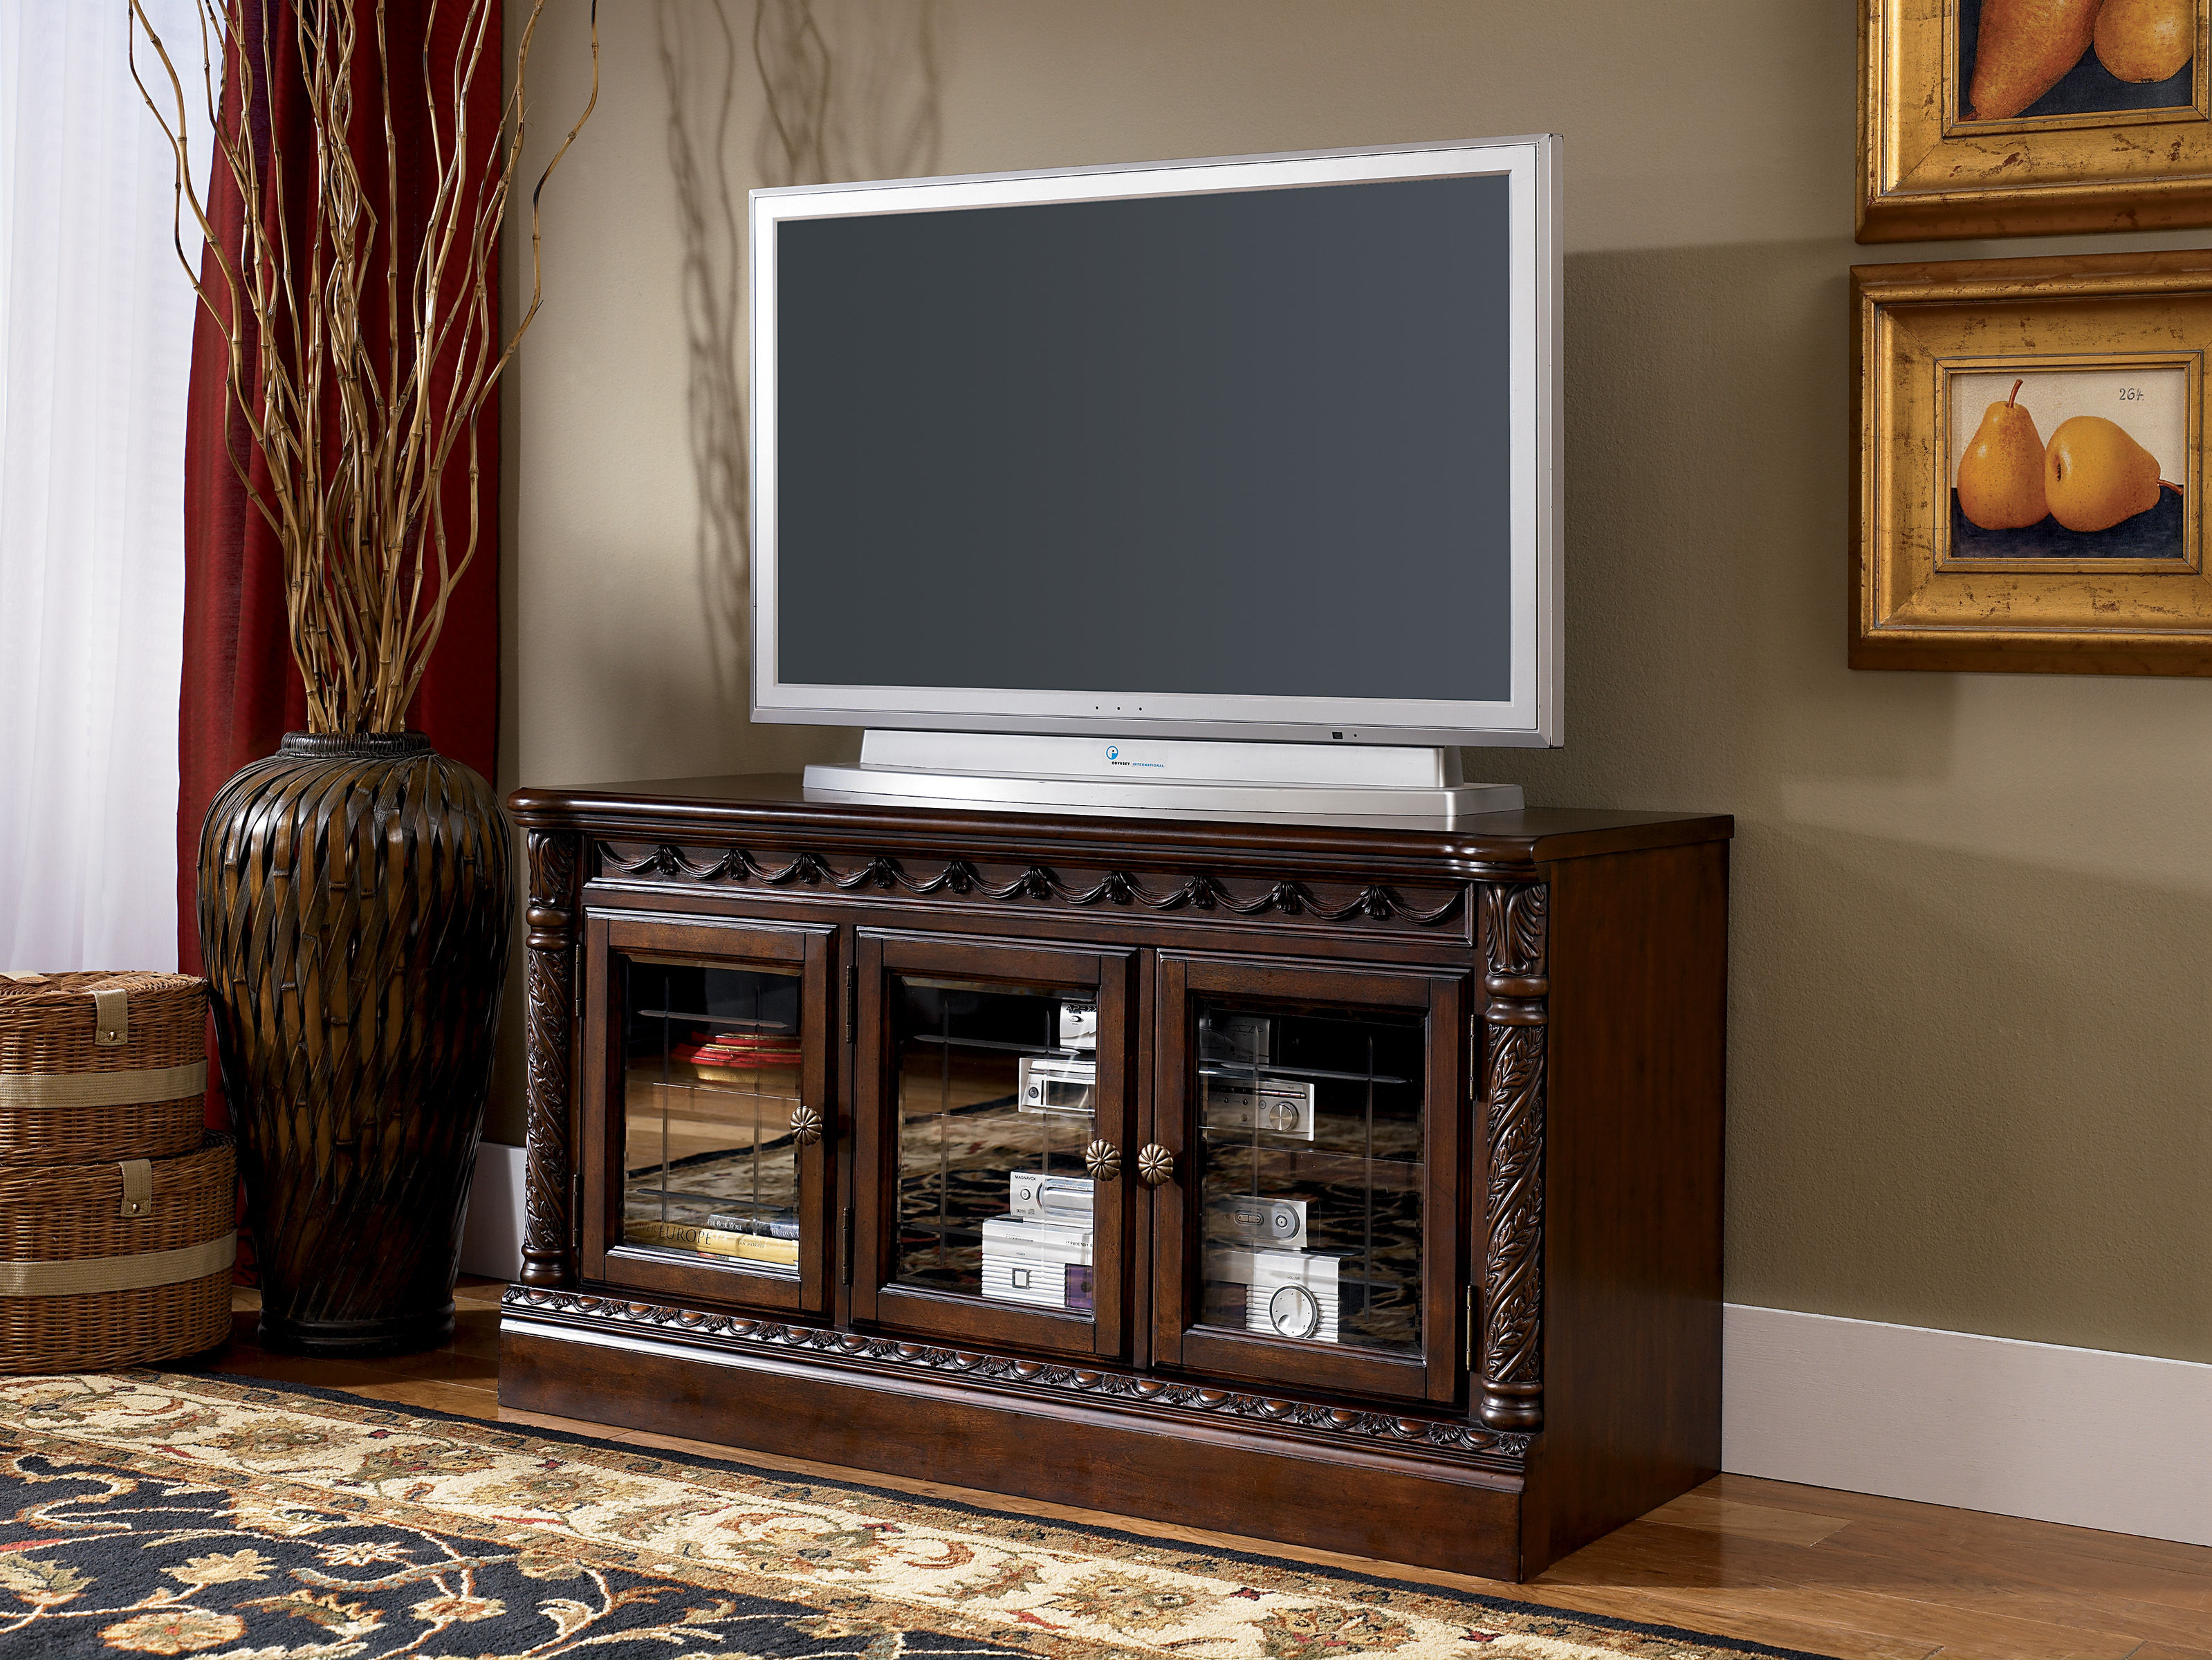 porter stand item tv threshold width products large furniture extra center miskelly ashley height b entertainment trim